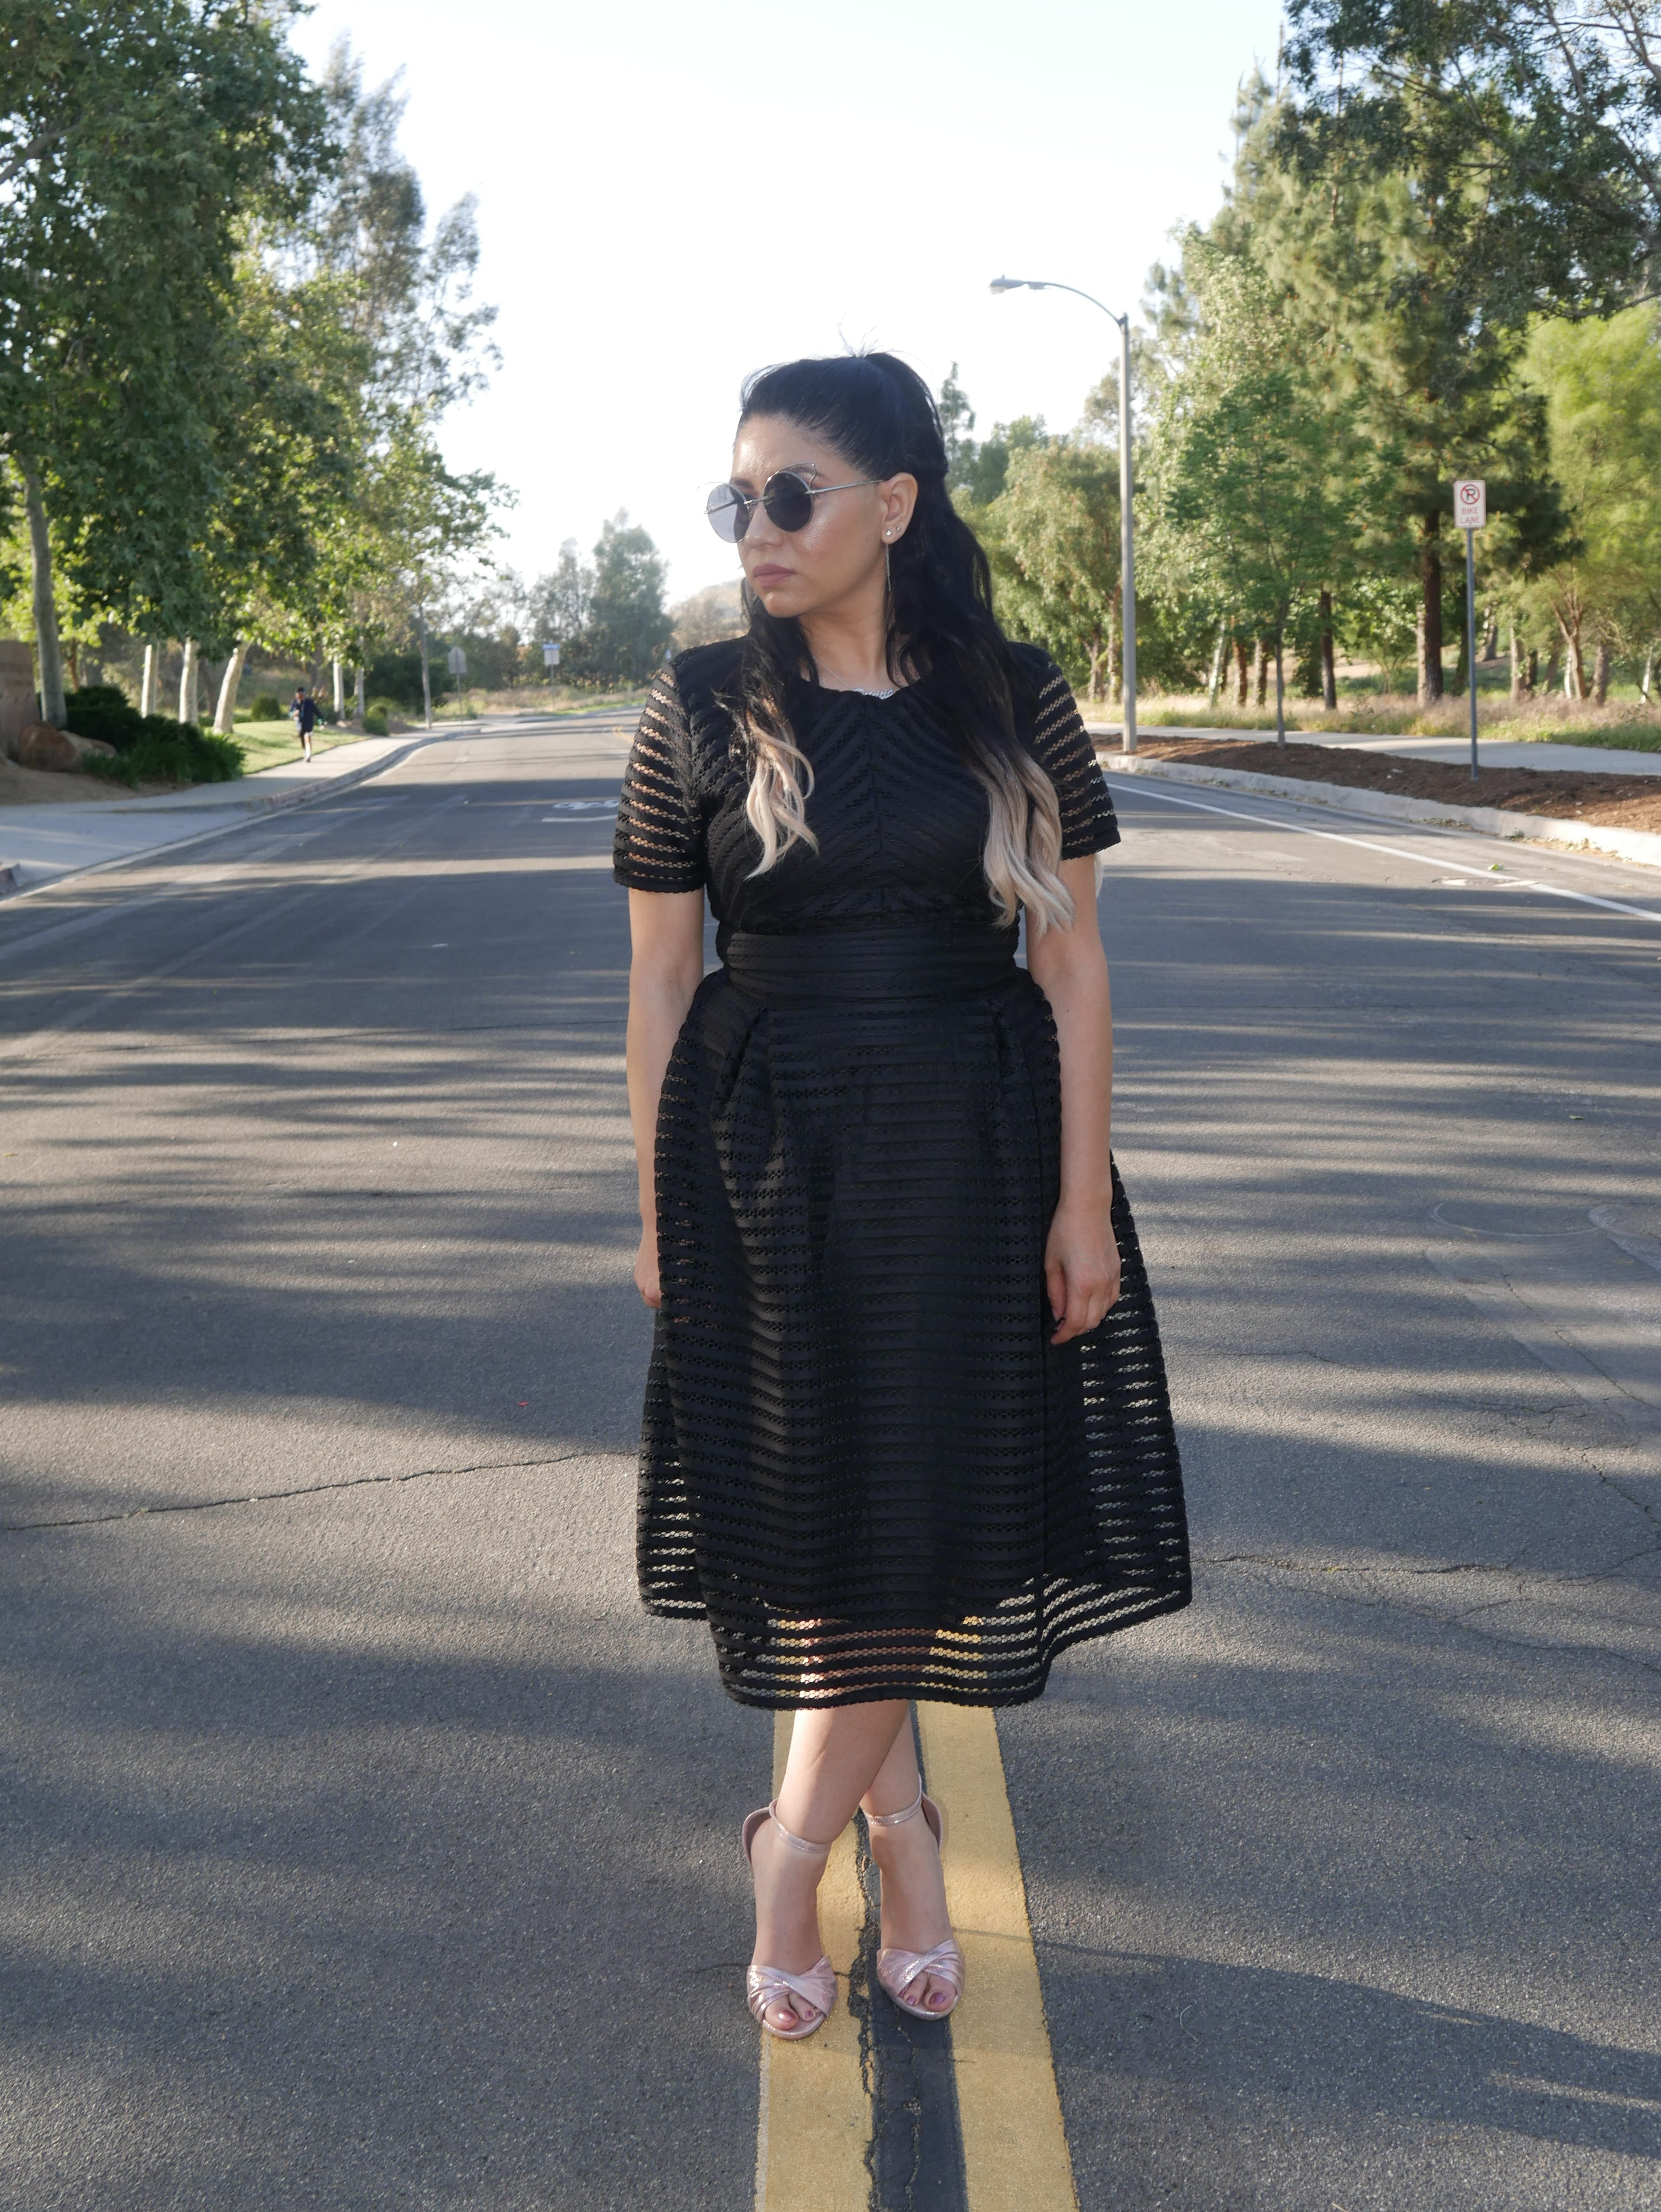 205b61fd33 BlueLillyPad » Blog Archive » Little Black Dress with Rose Gold Shoes